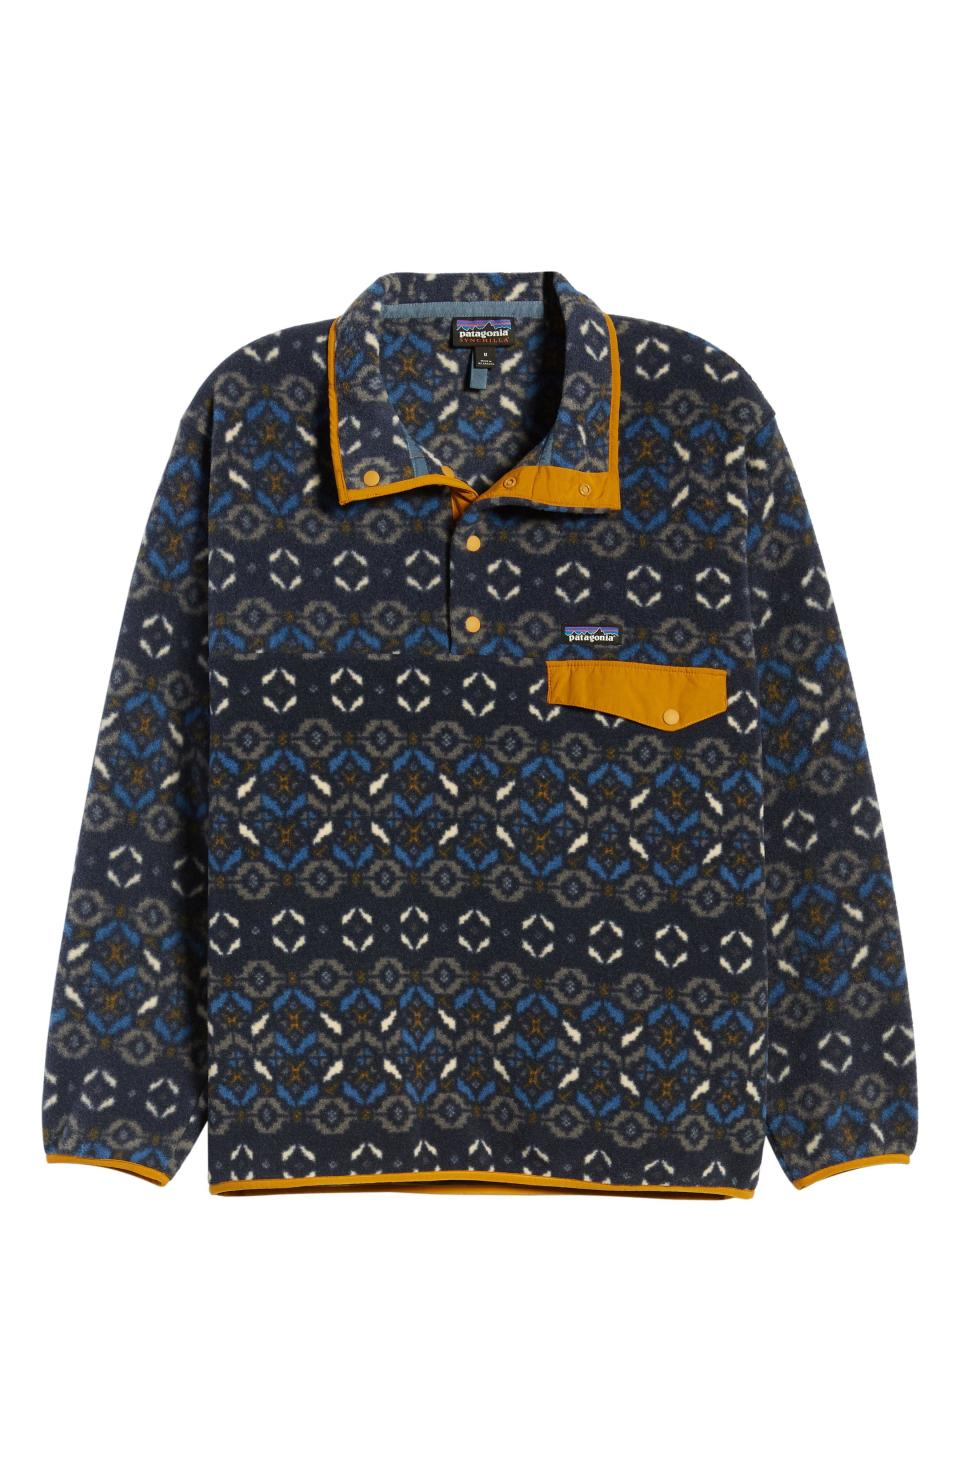 """<p><strong>Patagonia</strong></p><p>nordstrom.com</p><p><strong>$104.25</strong></p><p><a href=""""https://go.redirectingat.com?id=74968X1596630&url=https%3A%2F%2Fshop.nordstrom.com%2Fs%2Fpatagonia-synchilla-snap-t-pullover%2F3483477&sref=https%3A%2F%2Fwww.townandcountrymag.com%2Fstyle%2Ffashion-trends%2Fg32622659%2Fcool-jackets-for-men%2F"""" rel=""""nofollow noopener"""" target=""""_blank"""" data-ylk=""""slk:Shop Now"""" class=""""link rapid-noclick-resp"""">Shop Now</a></p><p>Let's be honest: fleece jackets are not the most exciting. Let's be honest again: we all have one (or many) anyway because they're so darn comfortable. Patagonia's signature pullovers give this casual favorite a cool twist with bold patterns. </p>"""